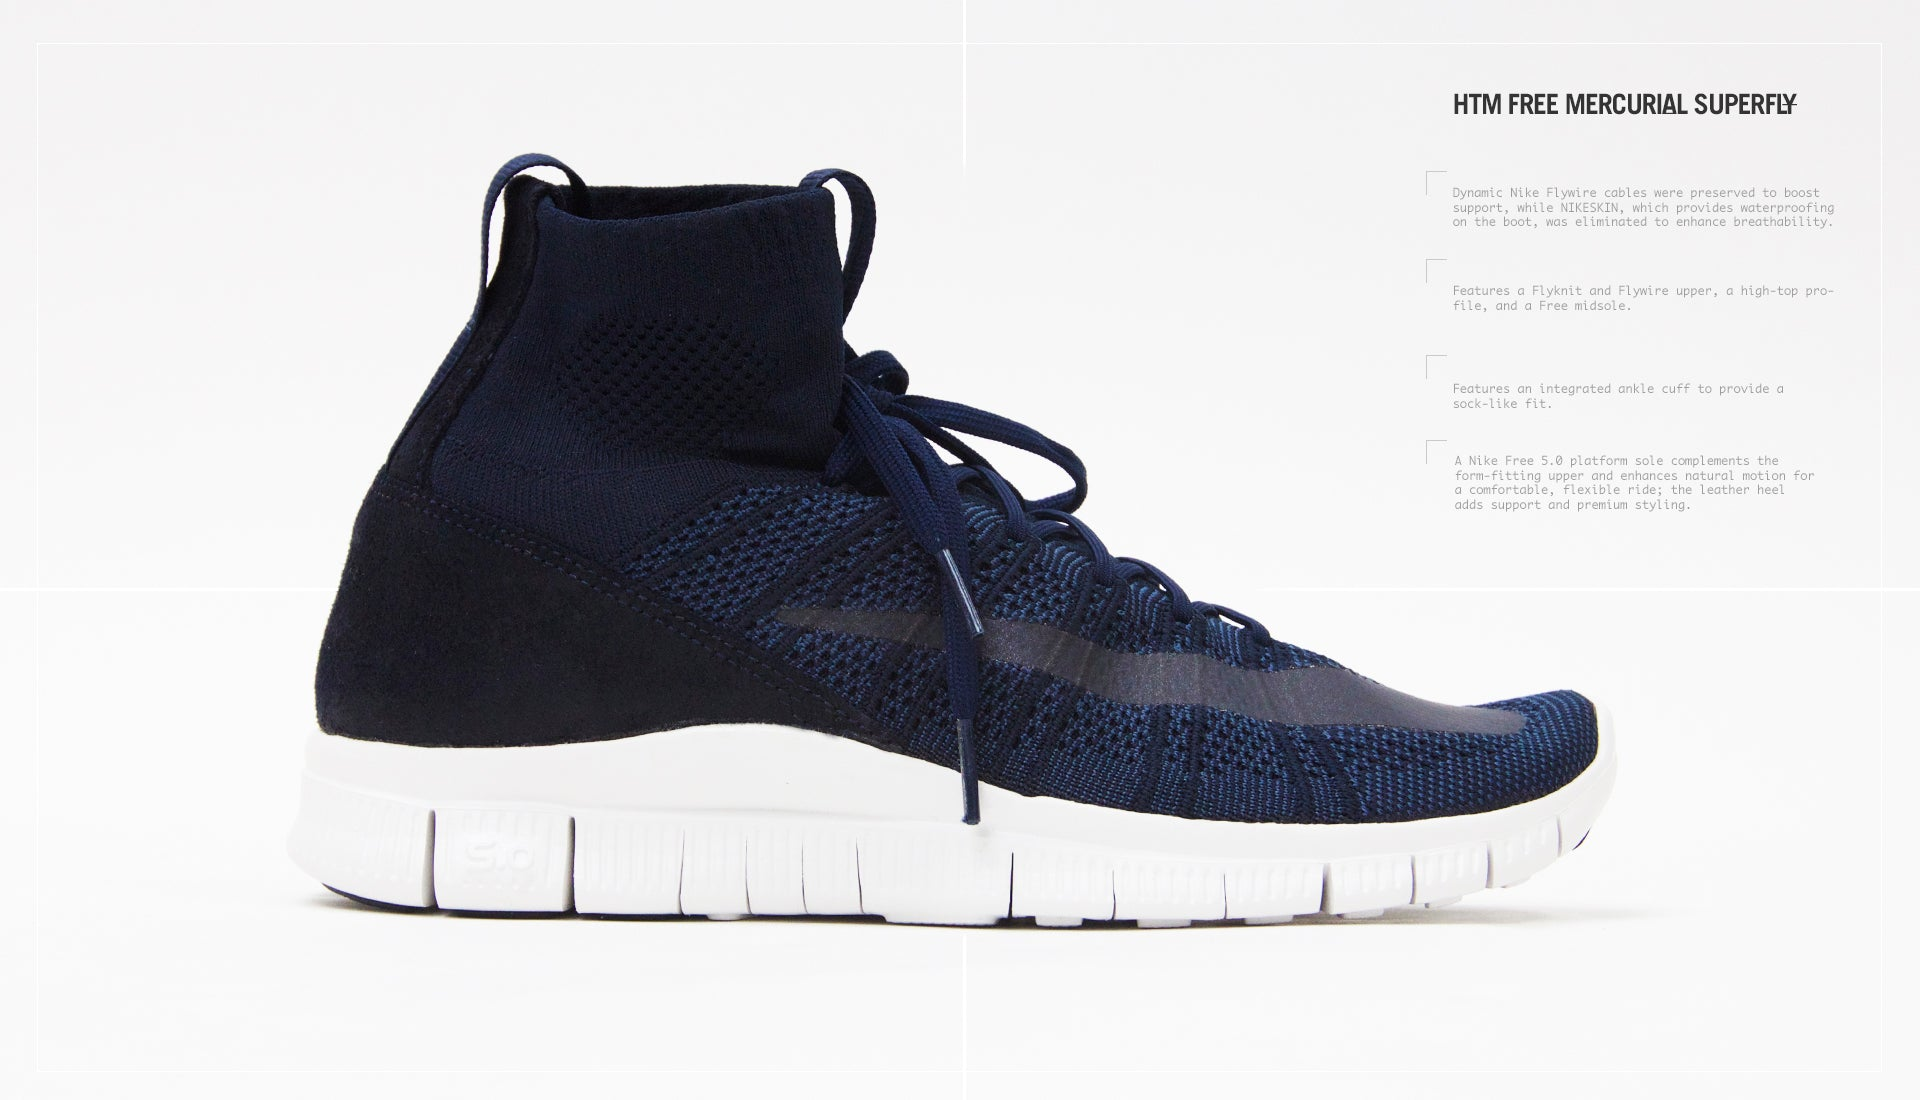 a00d7d620ab6 BLENDS | HTM Free Mercurial Superfly Flyknit - Feature